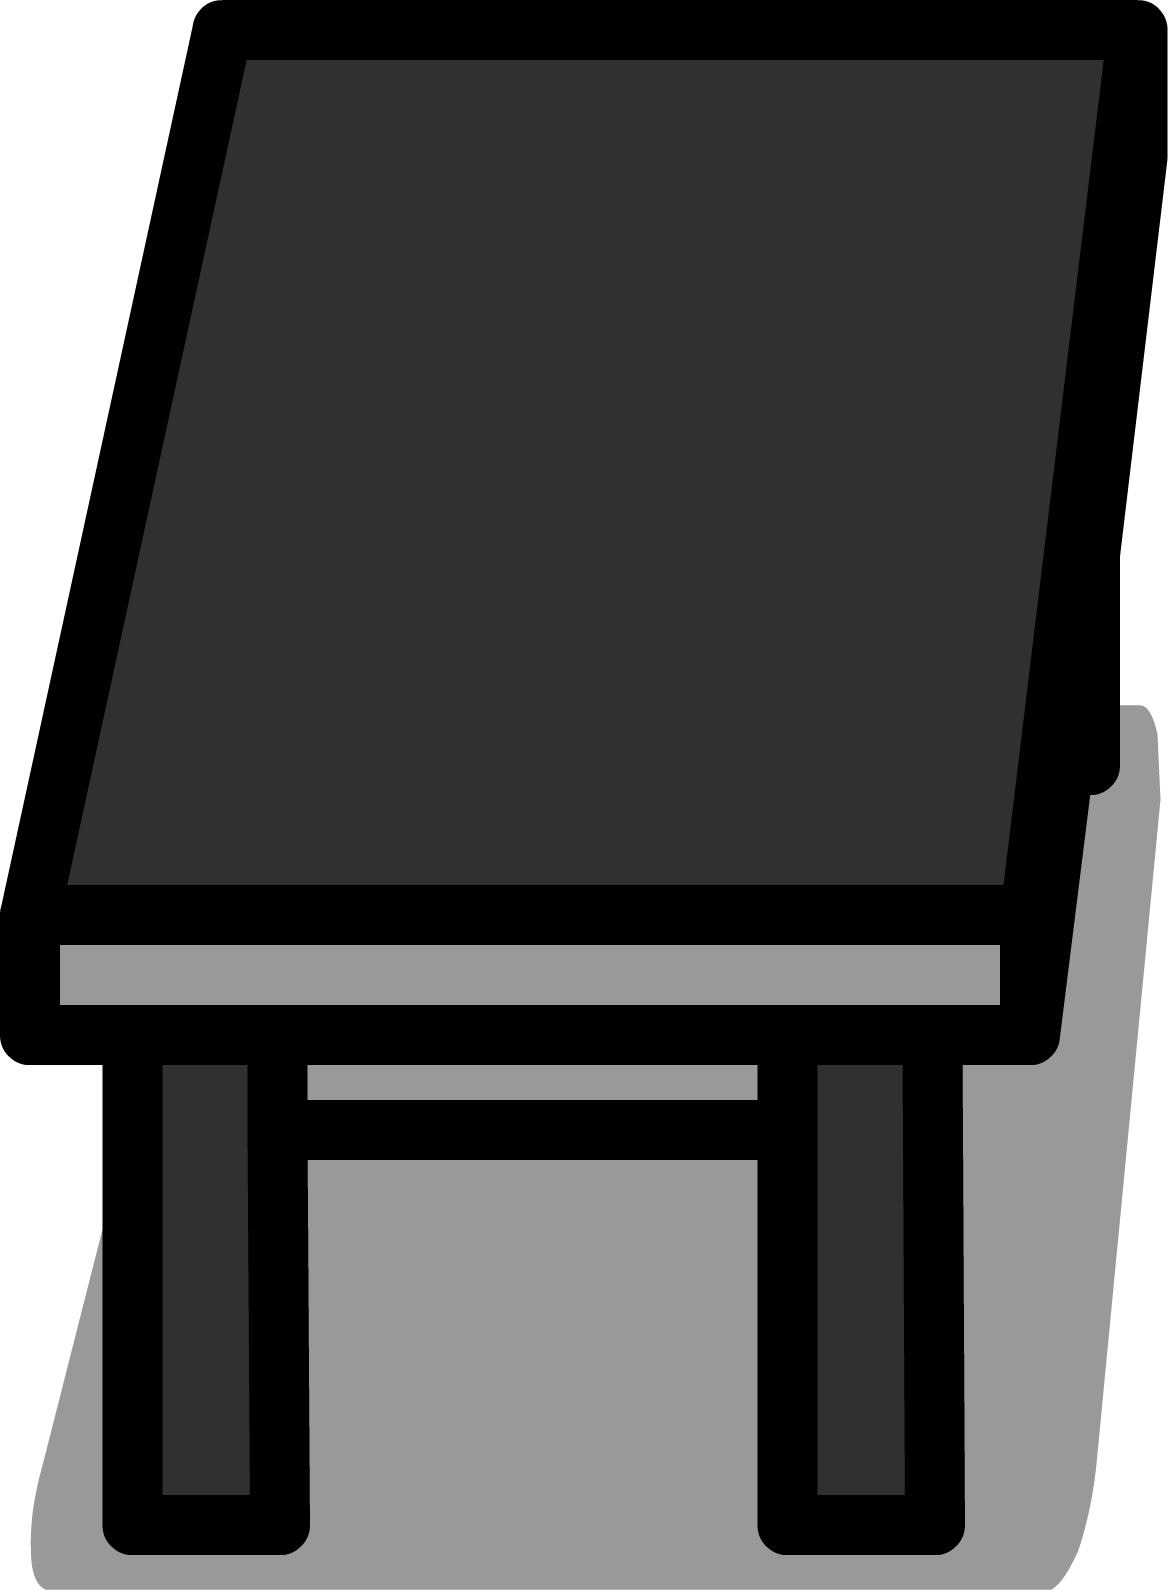 Piano clipart piano bench. Image sprite png club